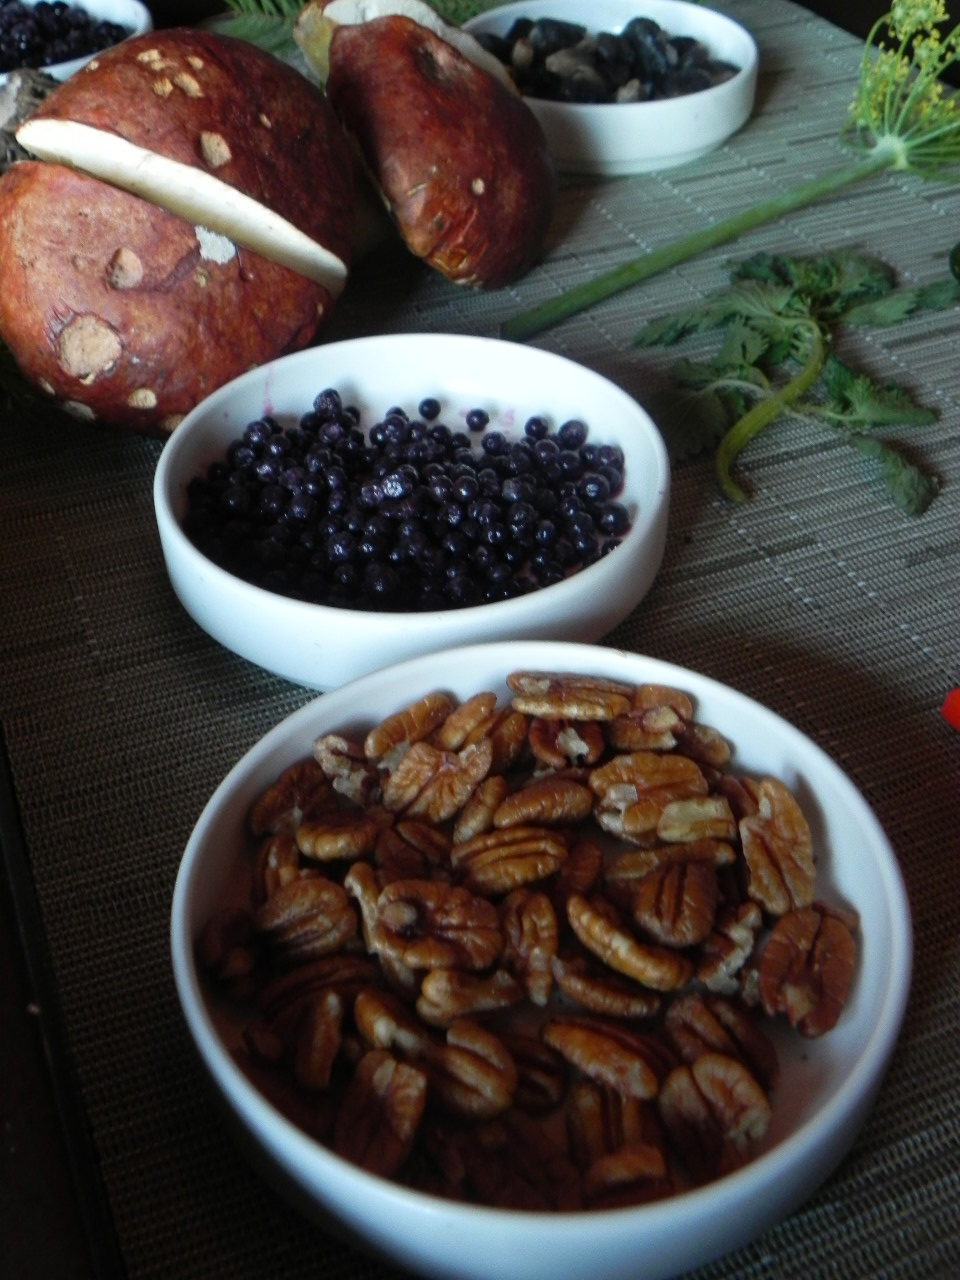 A display of the various edibles Stewart found in the Sierra Nevada. From bottom to top: a bowl of wild pecans, elderberries, Sierra porcinis and huitlacoche which he describes as corn infected with fungus.